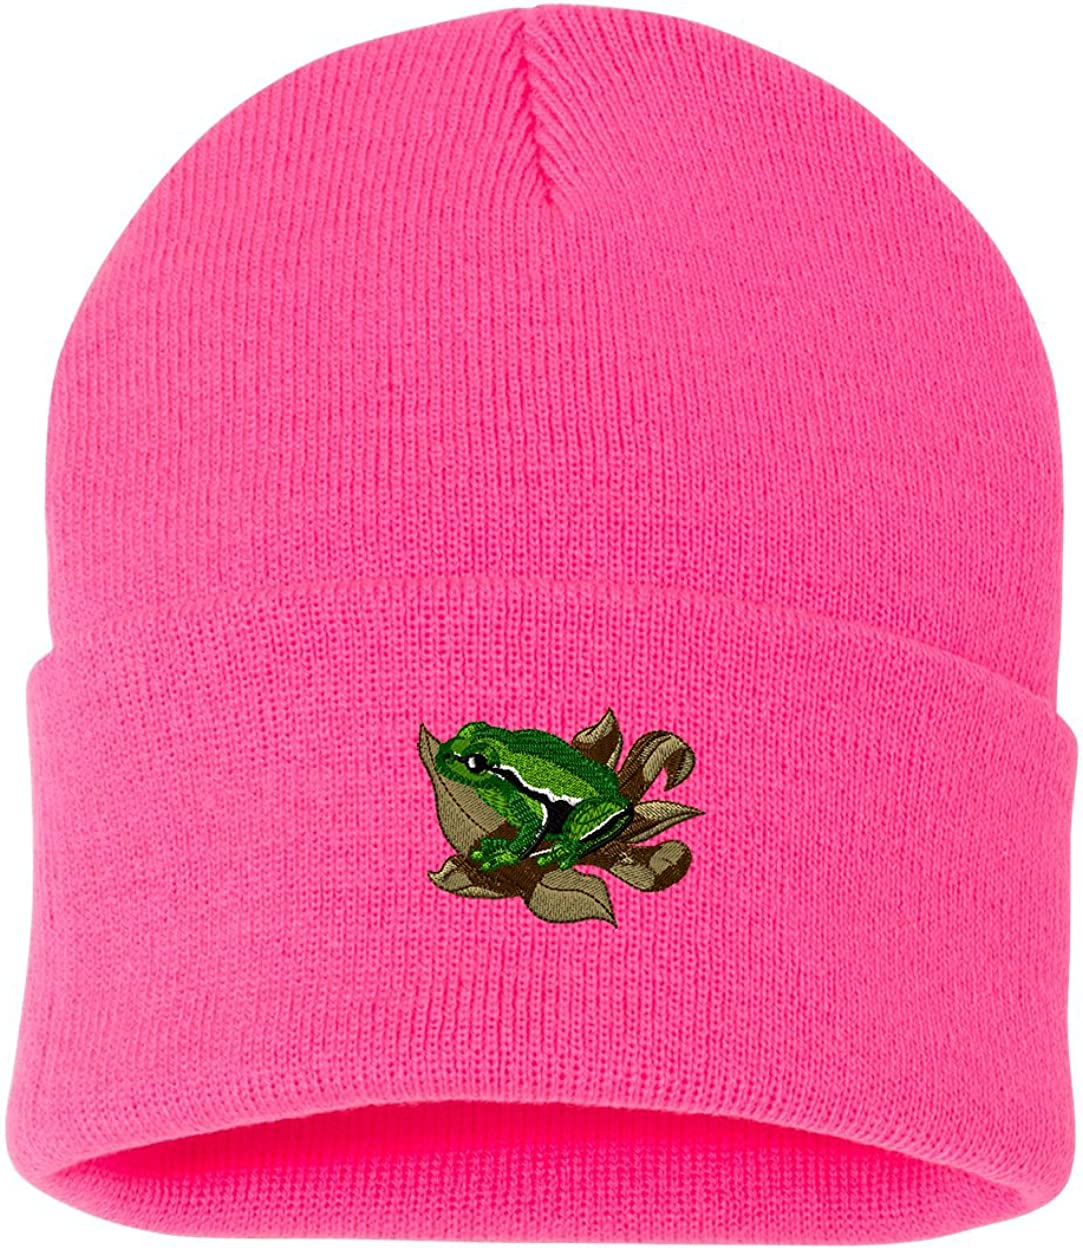 European Tree Frog Custom Personalized Embroidery Embroidered Beanie